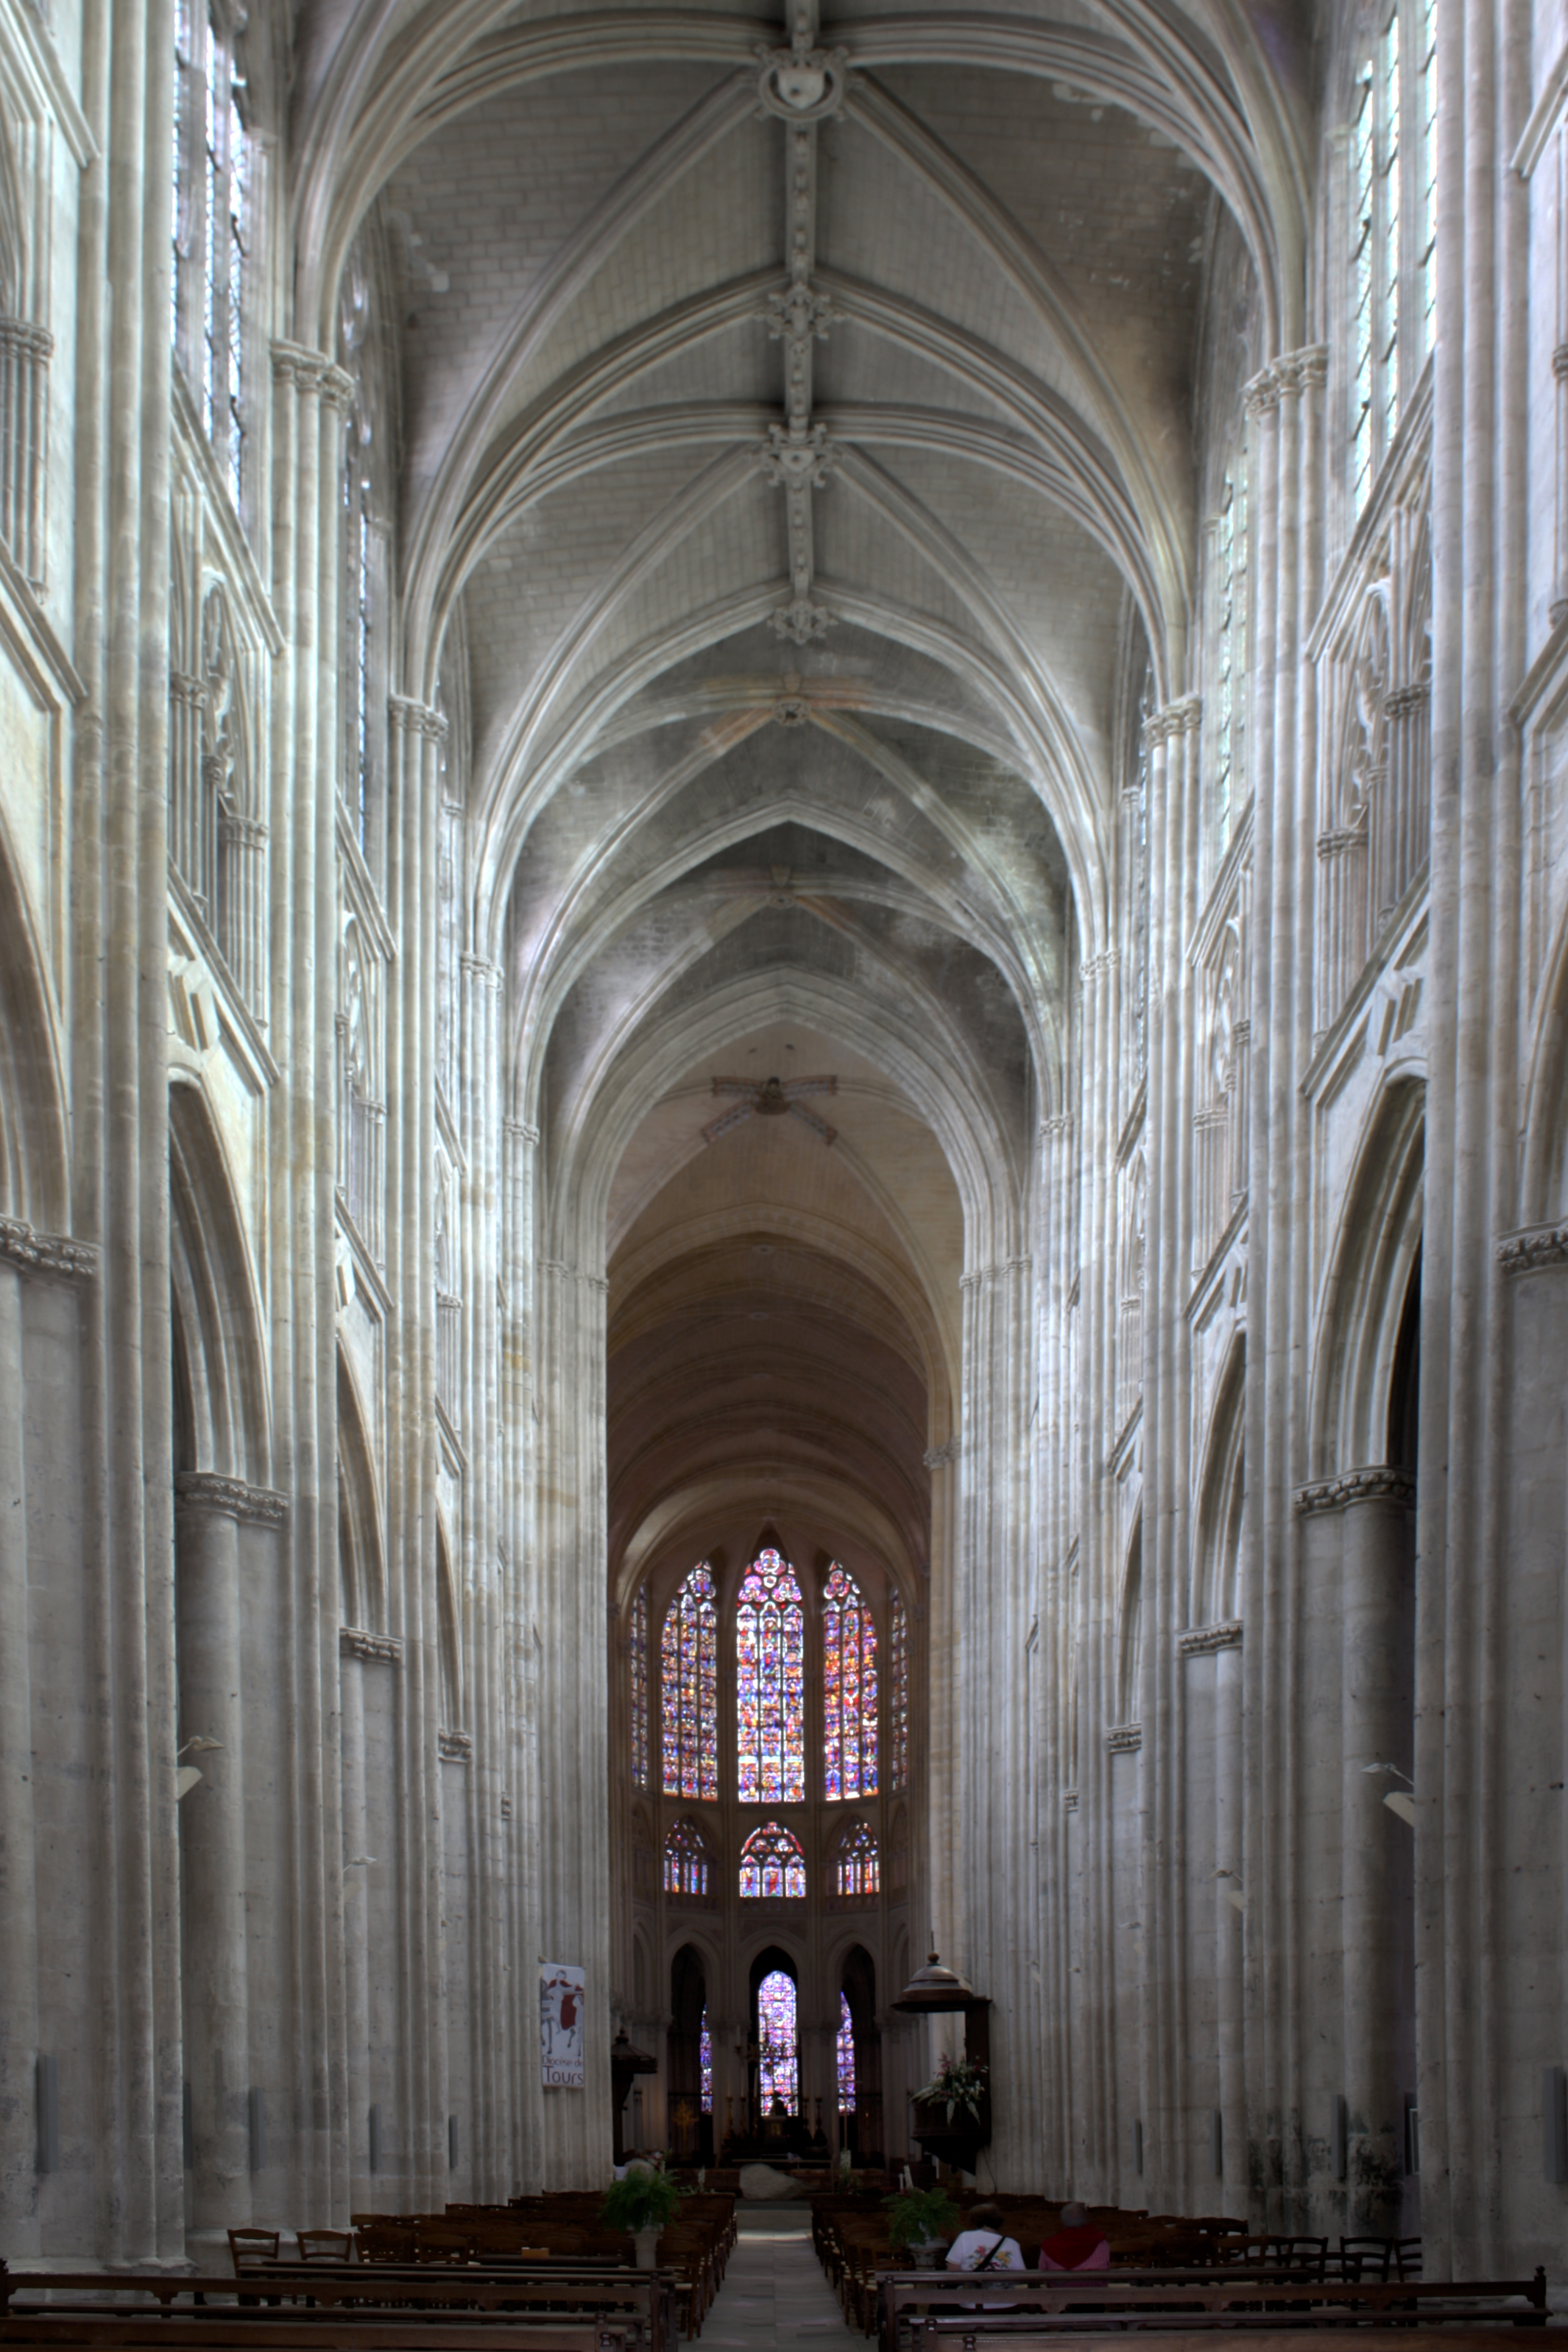 http://upload.wikimedia.org/wikipedia/commons/4/41/Tours_-_cath%C3%A9drale_Saint-Gatien_-_nef.jpg